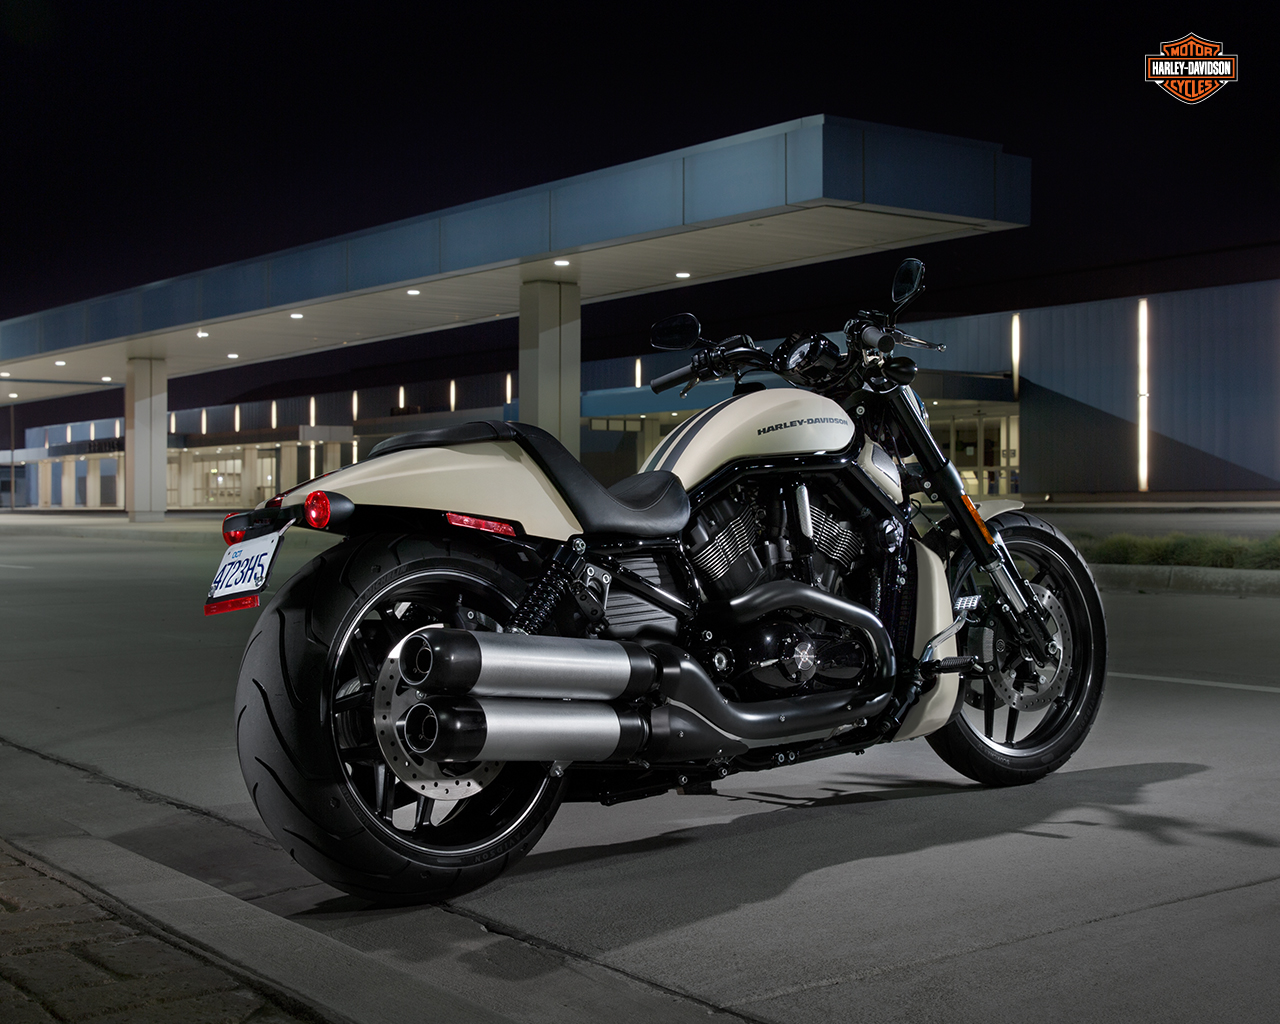 harley-davidson wallpaper (harley-davidson Night Rod Special)